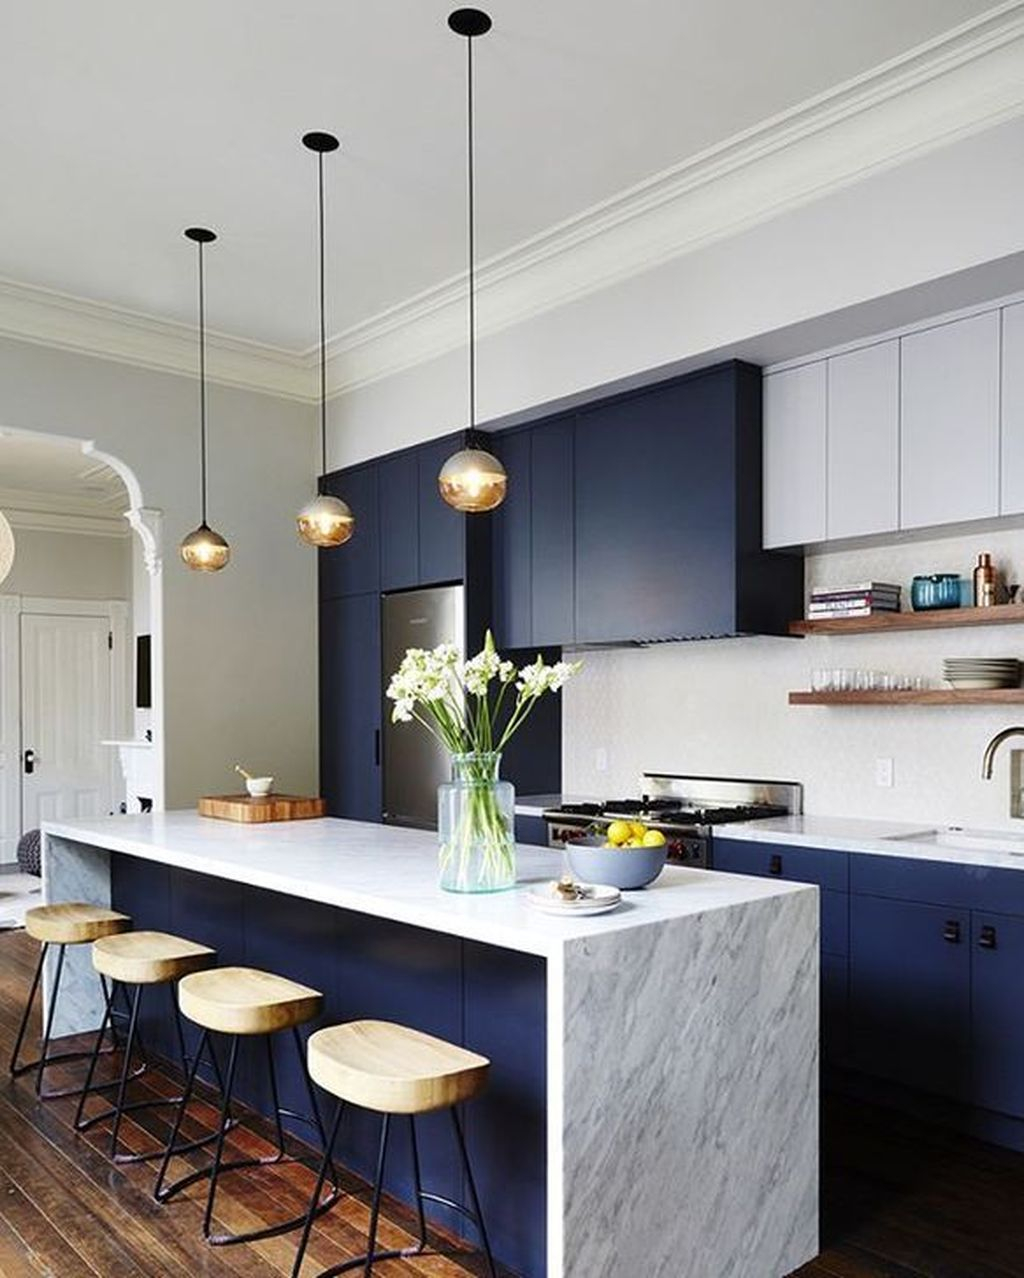 Elegant Minimalist Kitchen Design Ideas For Small Space To Try 26